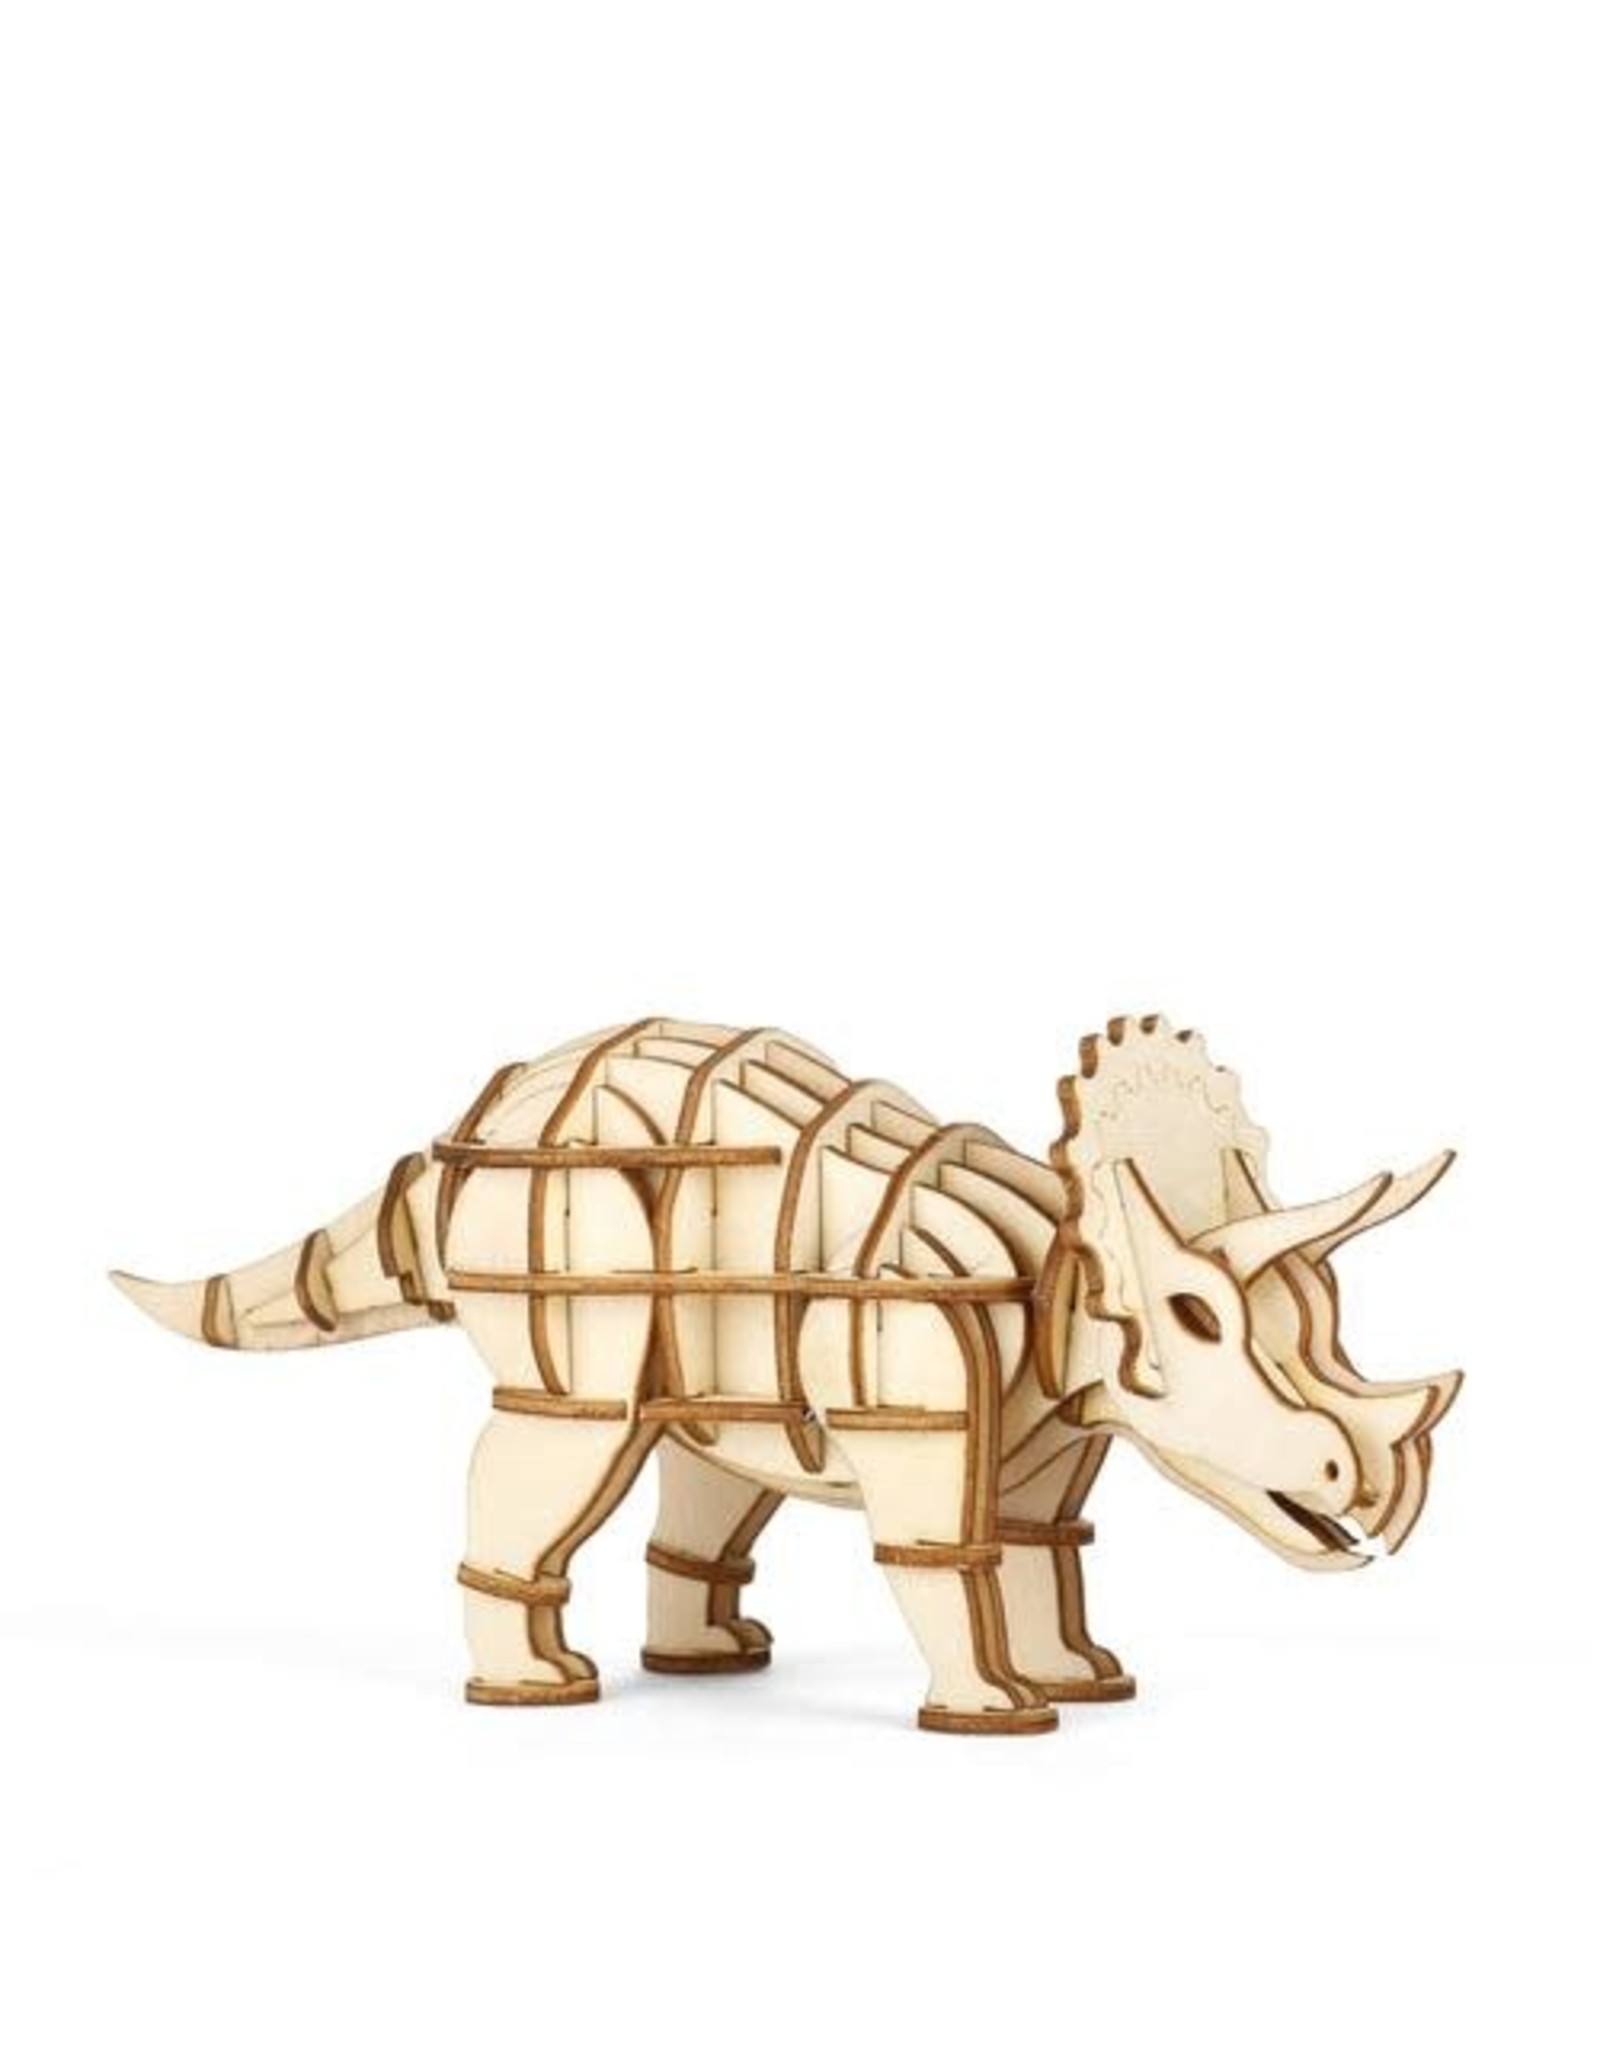 Kikkerland Triceratops 3D Wooden Puzzle